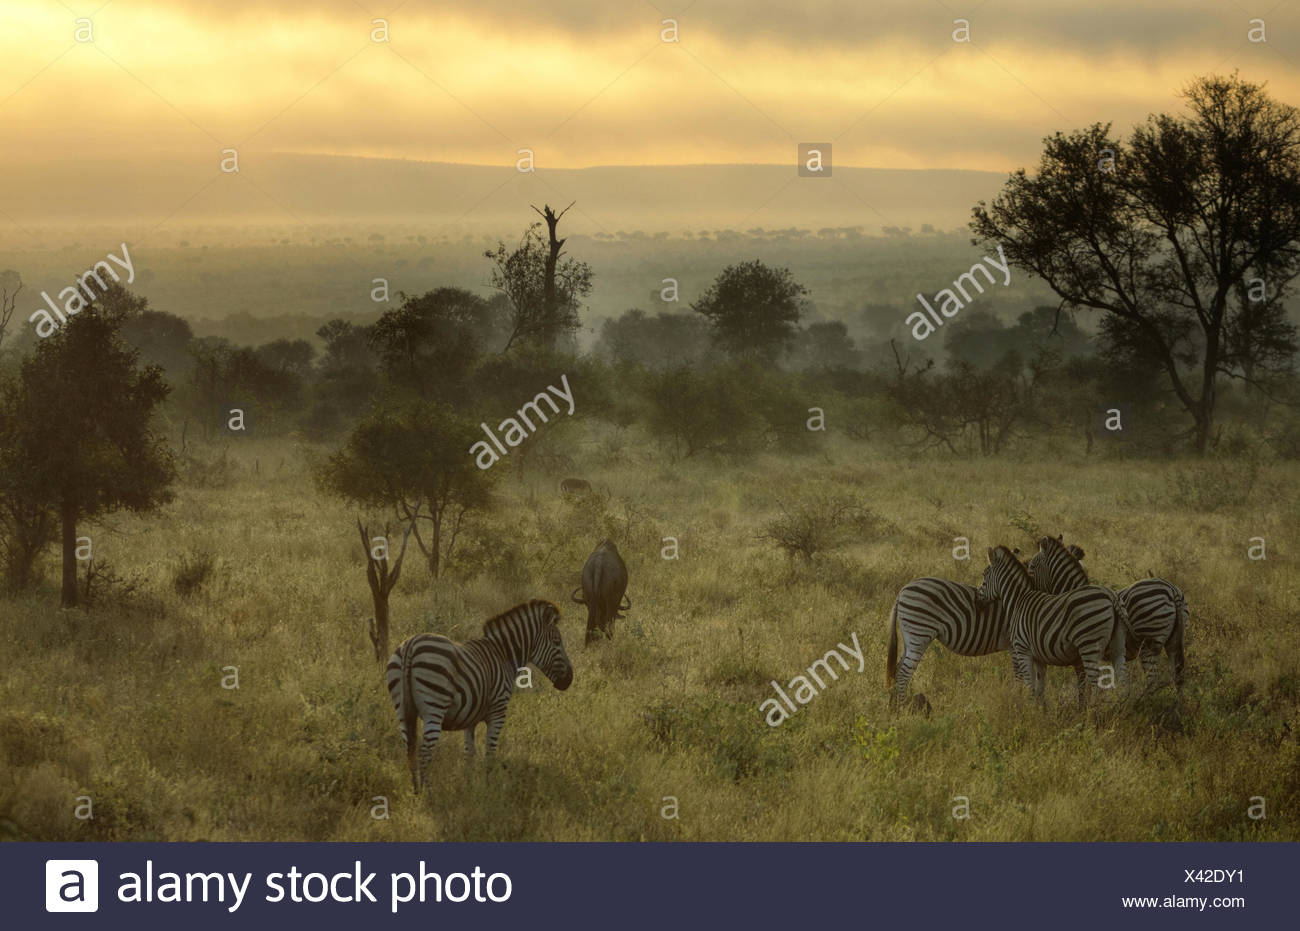 South Africa, Kruger National Park, Misty morning with Zebras and wildebeest Stock Photo